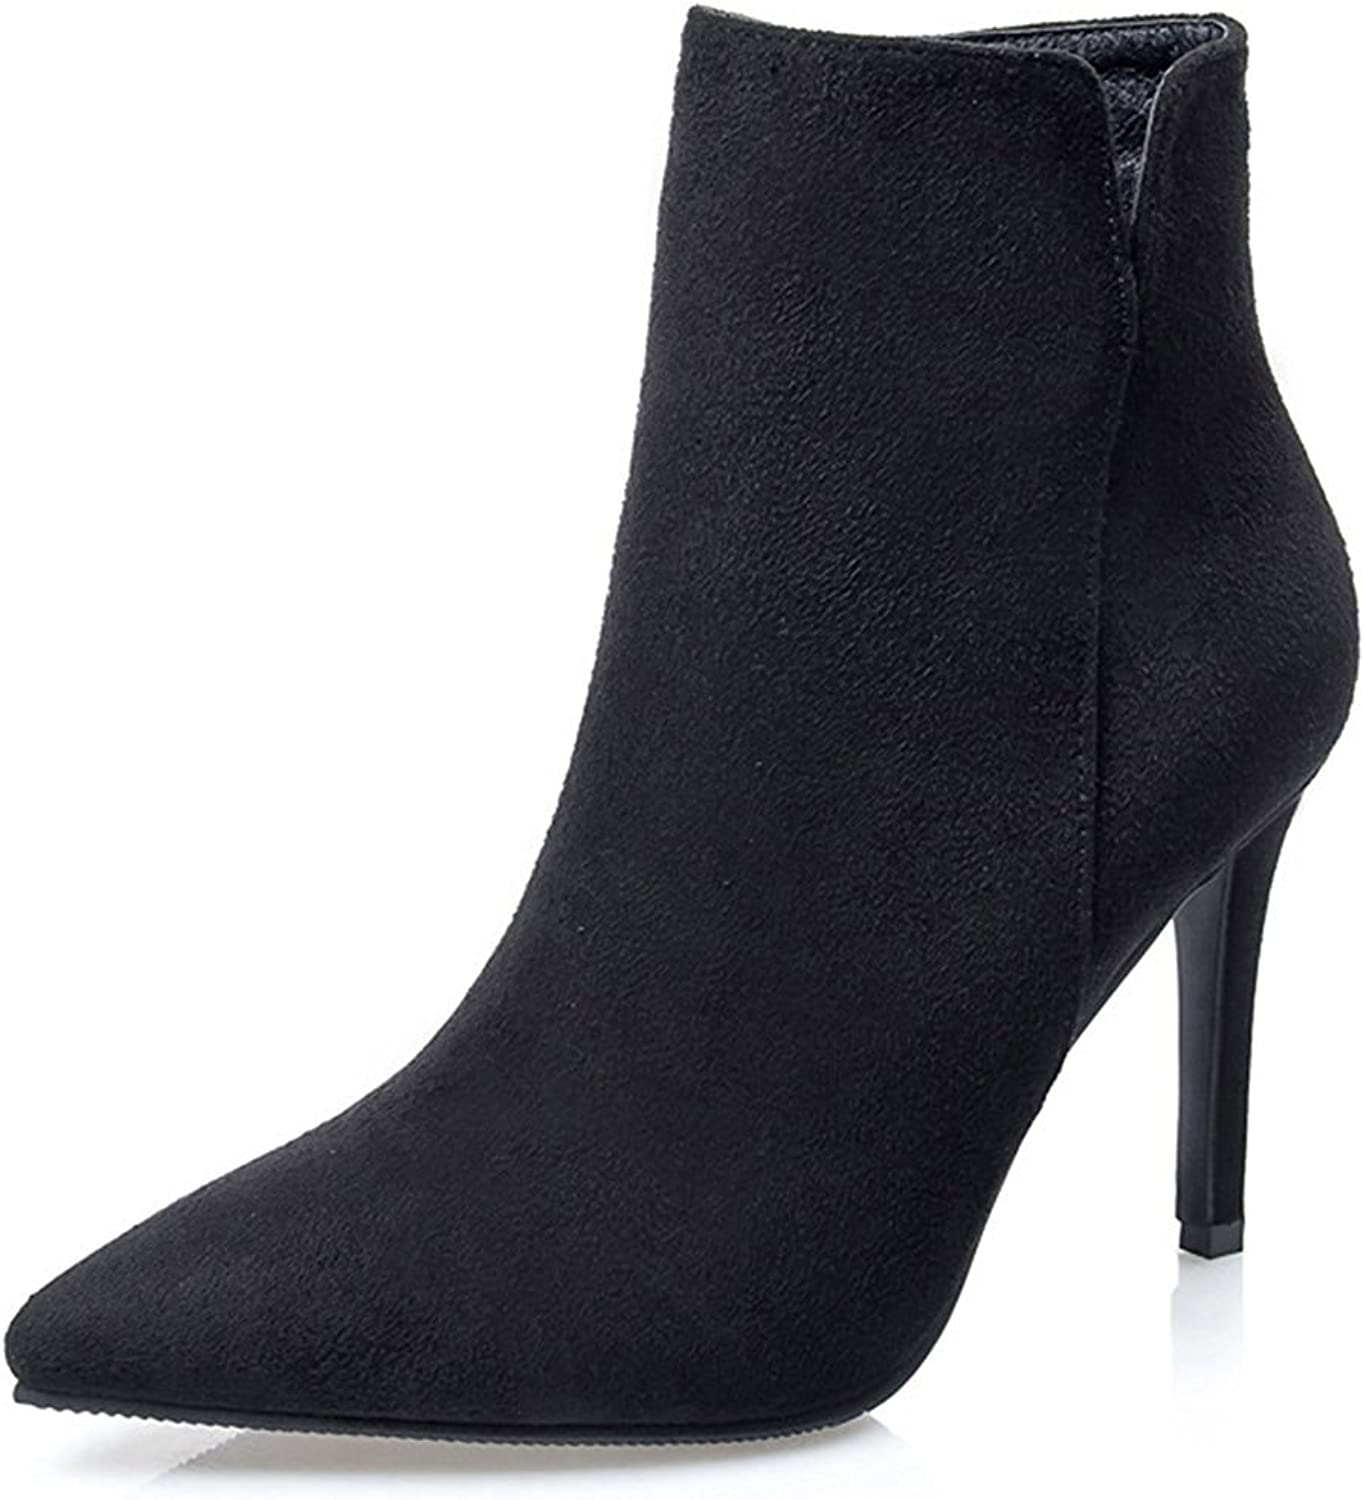 Colnsky Women's Sexy Pointed Toe Booties Stiletto High Heels Side Zipper Ankle Boots